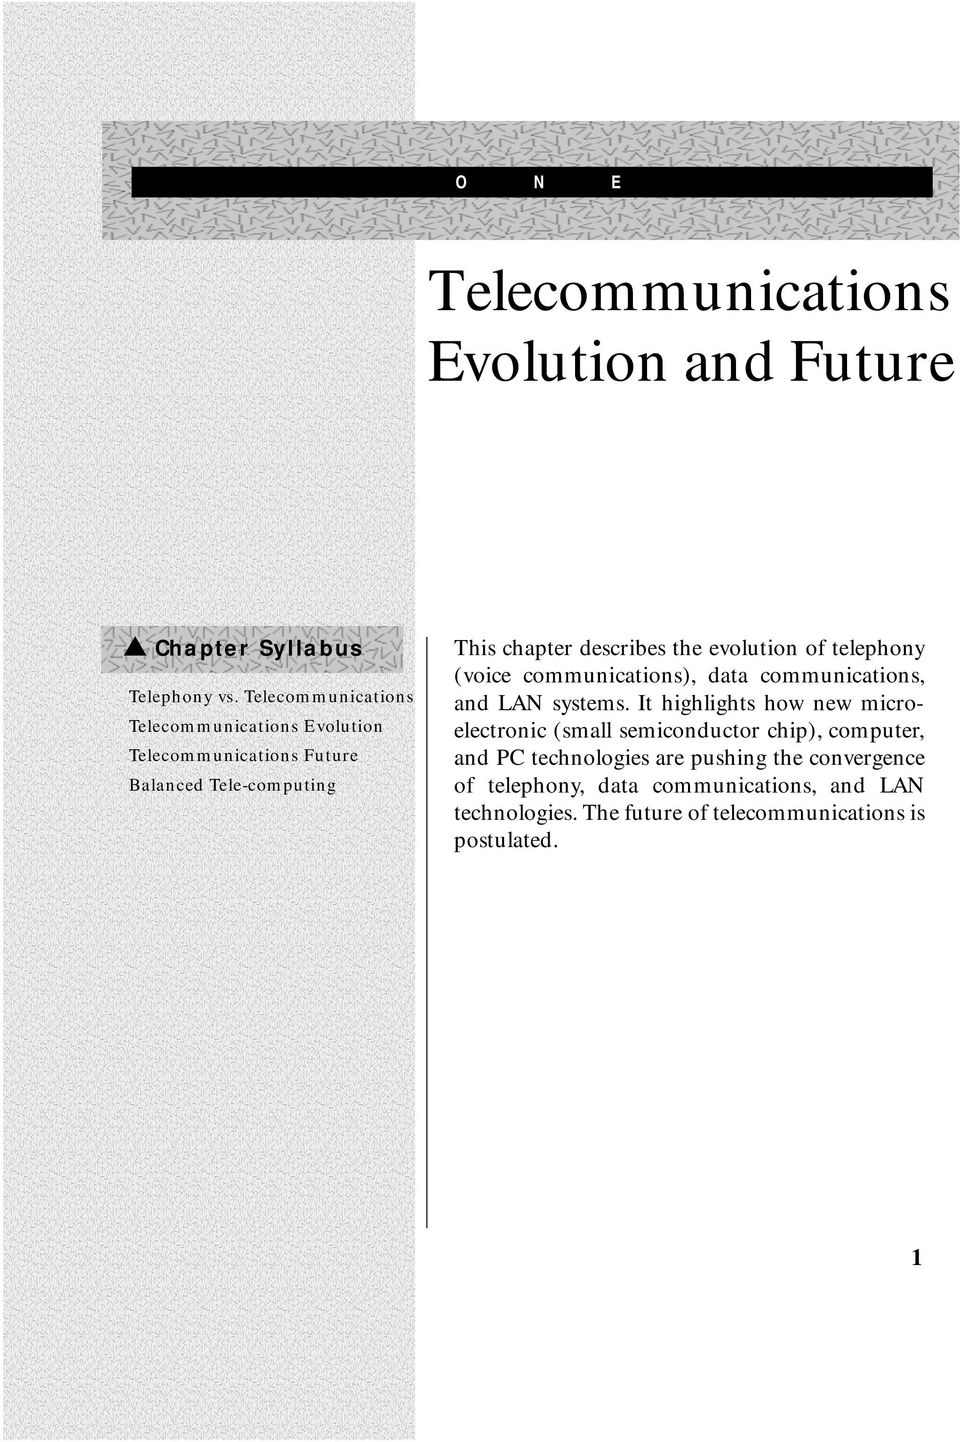 evolution of telephony (voice communications), data communications, and LAN systems.